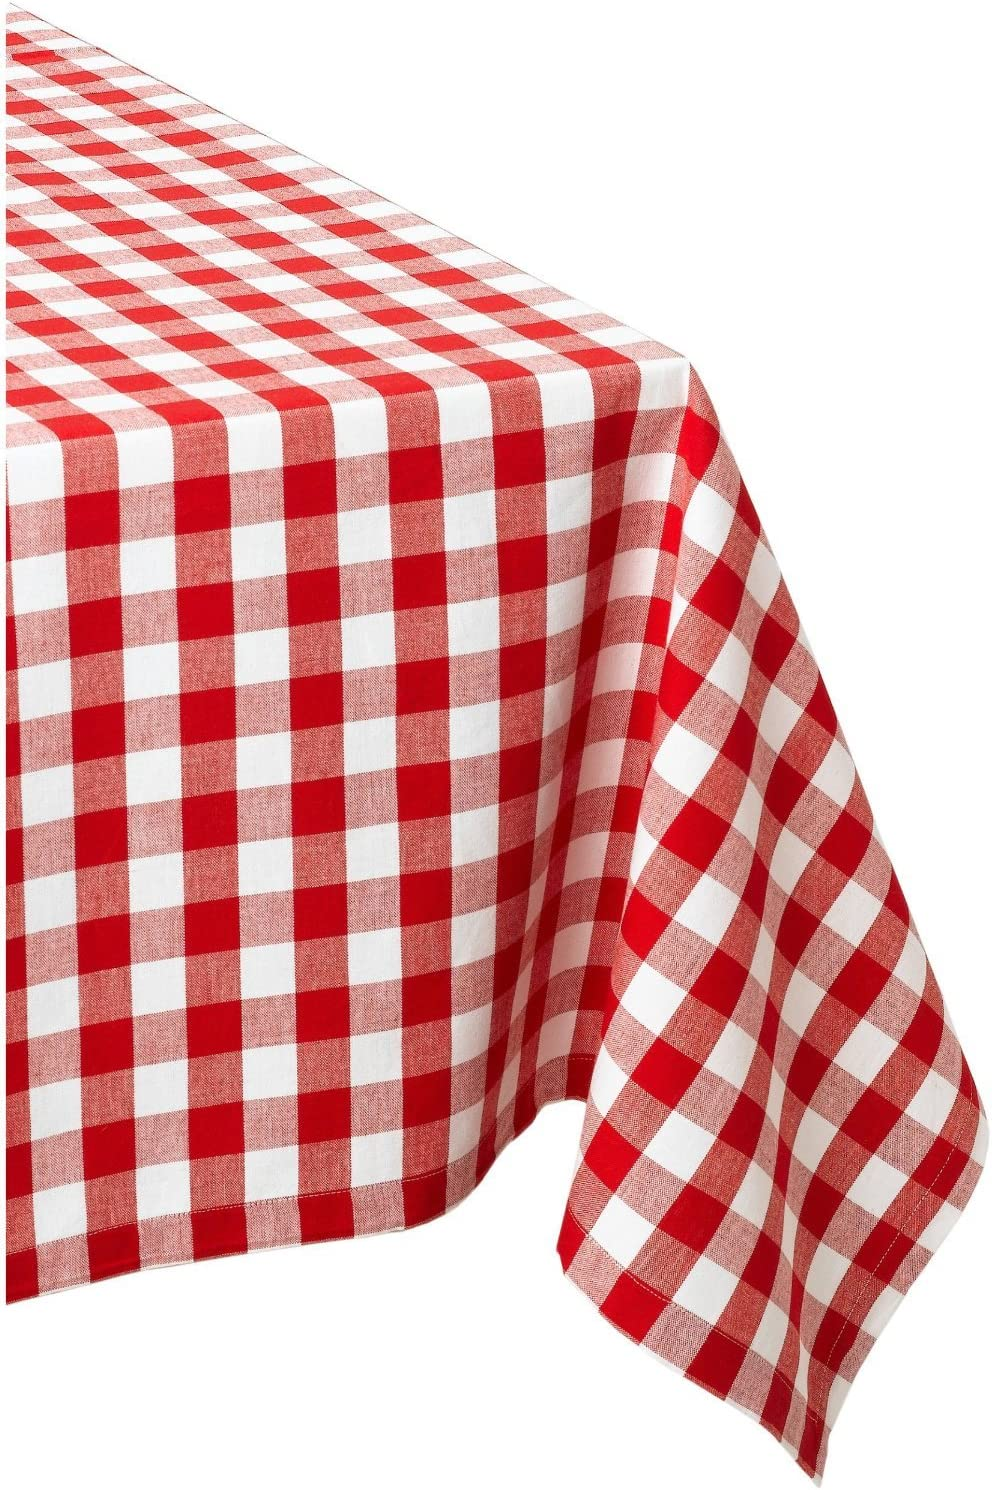 Very Outlet ☆ Free Shipping popular DII 100% Cotton Checkered Collection Red Tablecloth 60x120